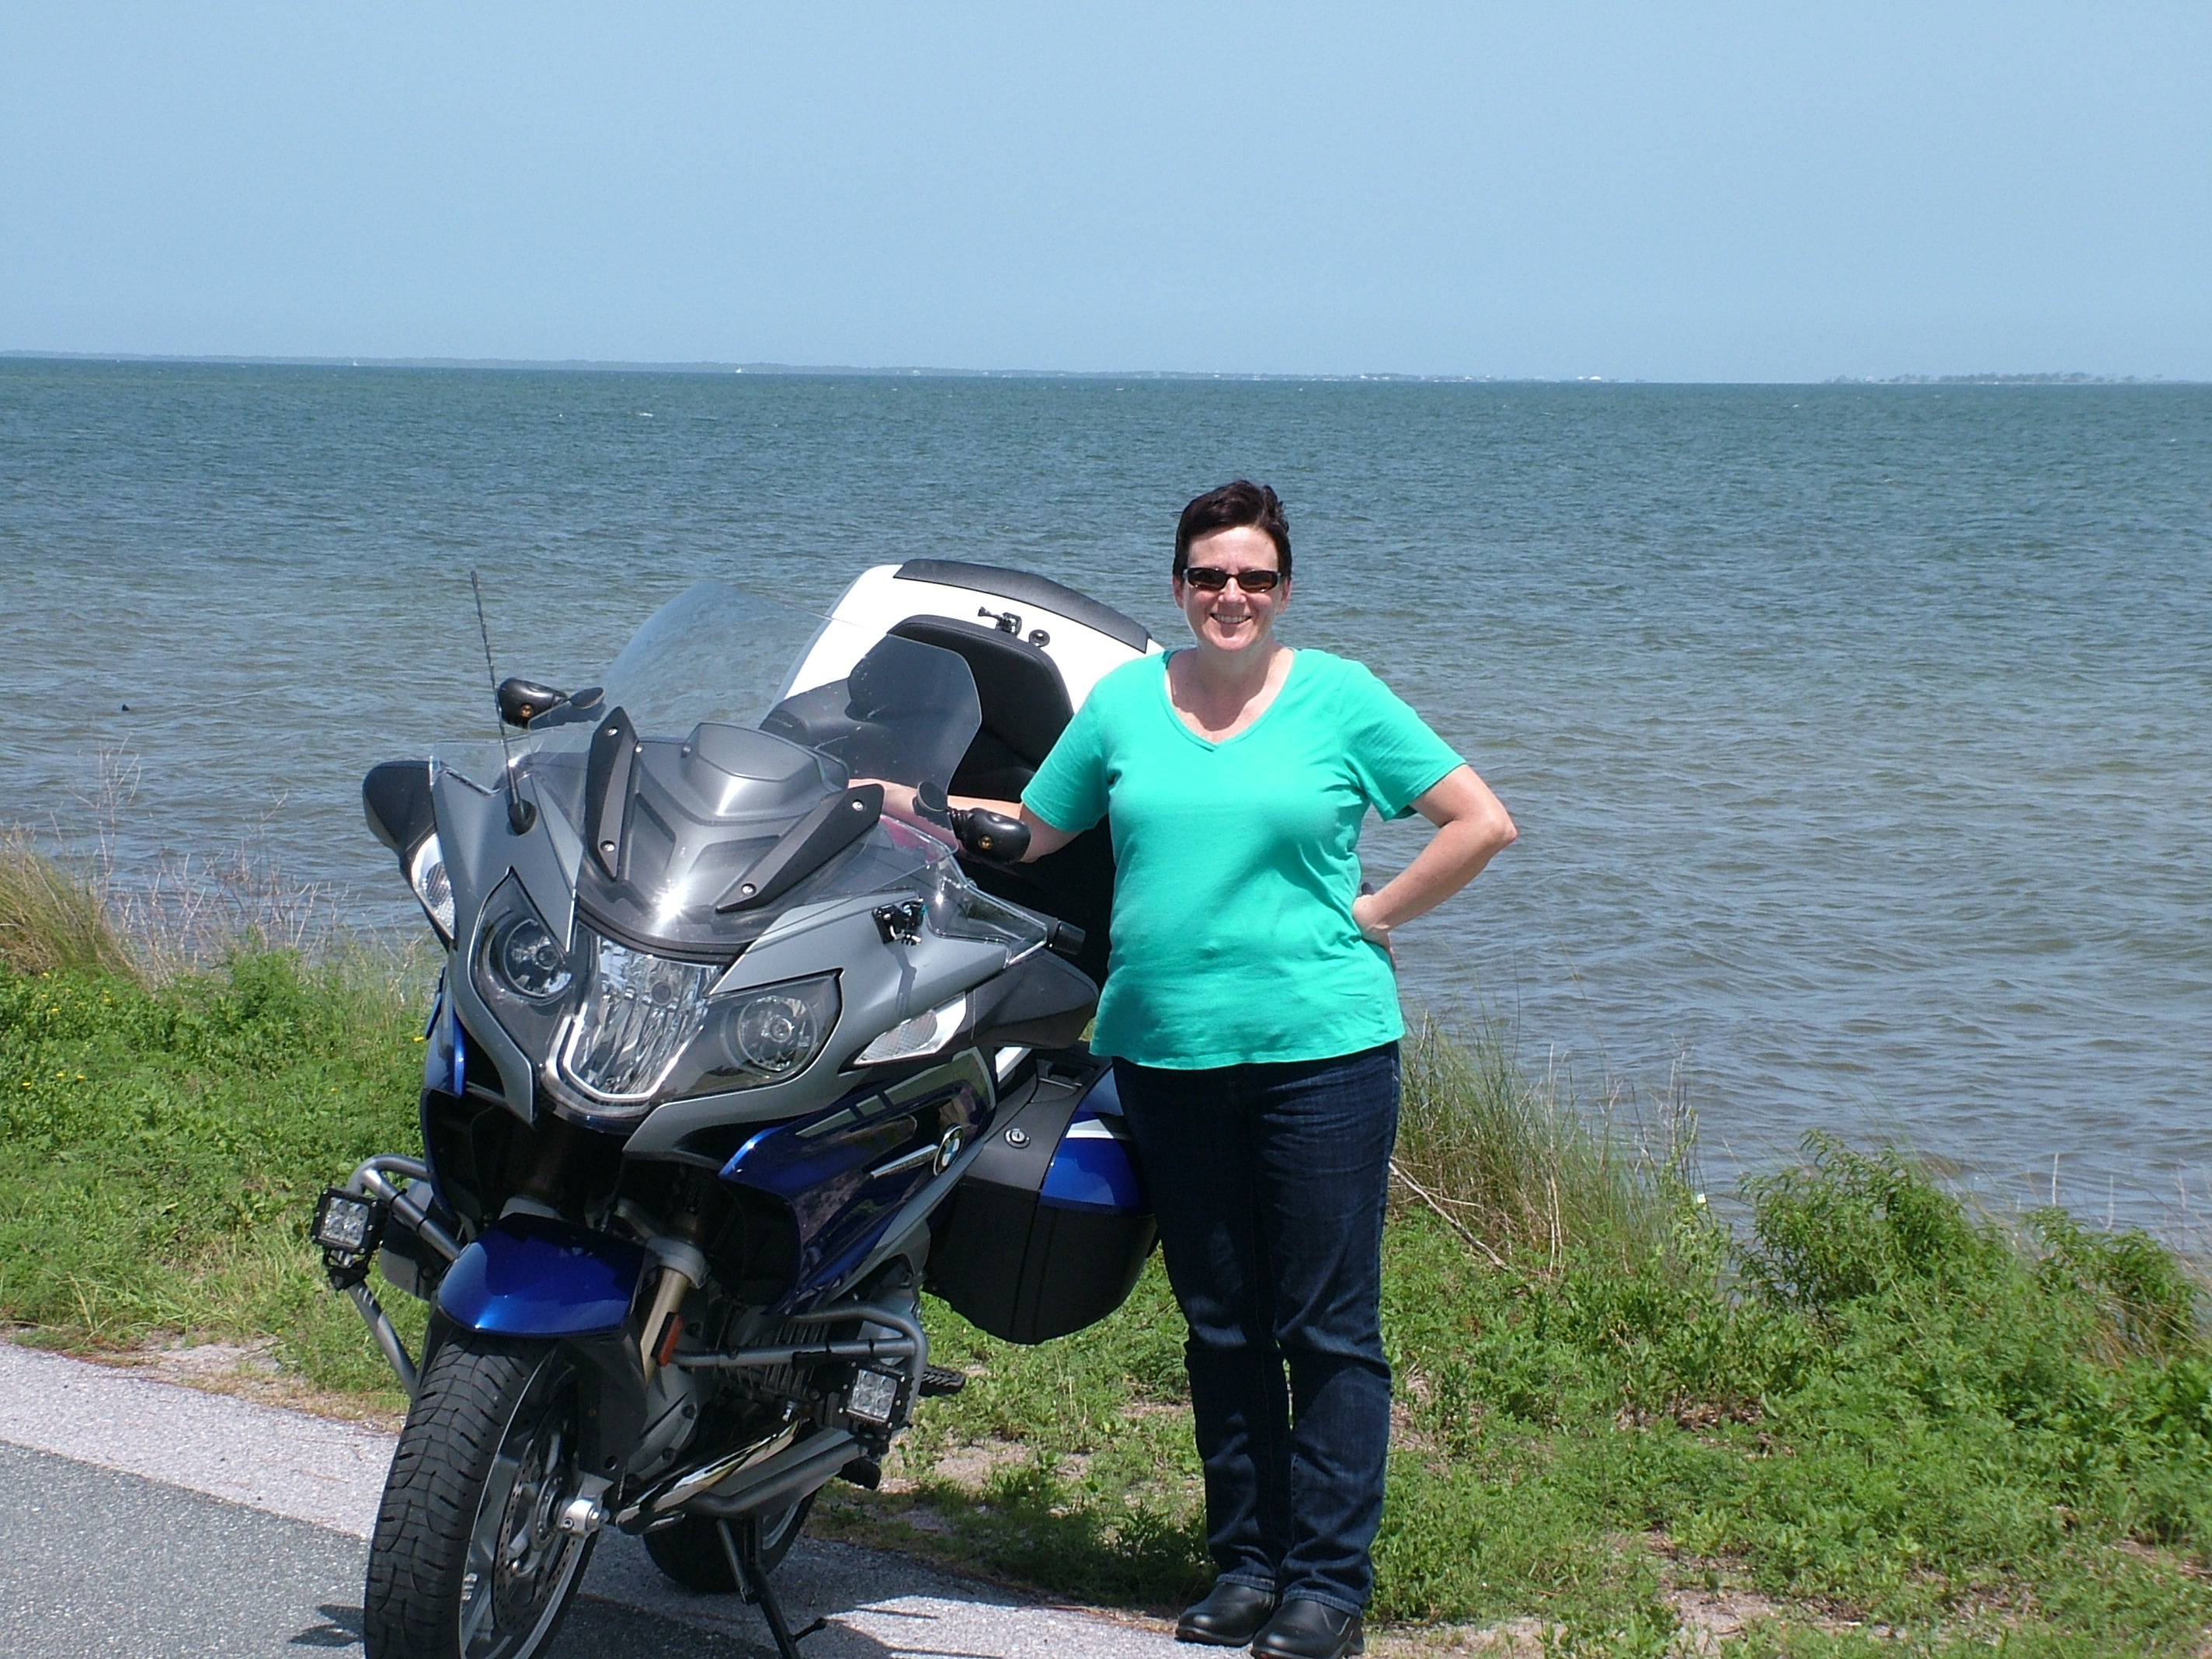 2015 Bmw R1200rt My Two Cents Review Bmw Luxury Touring Community